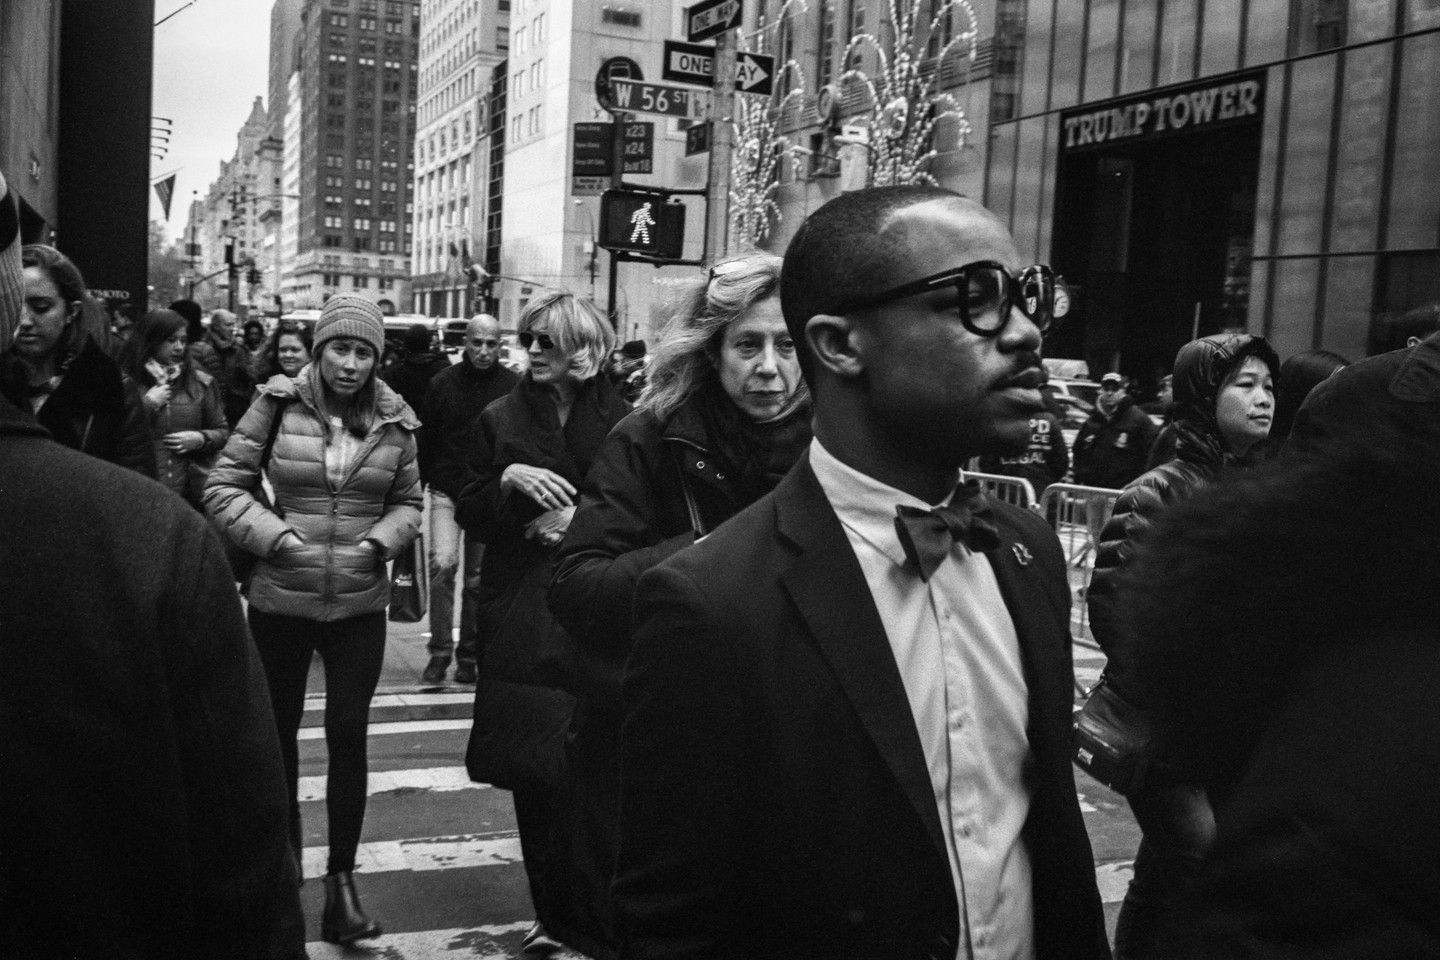 Man of Bow Tie (Front of Trump Tower)